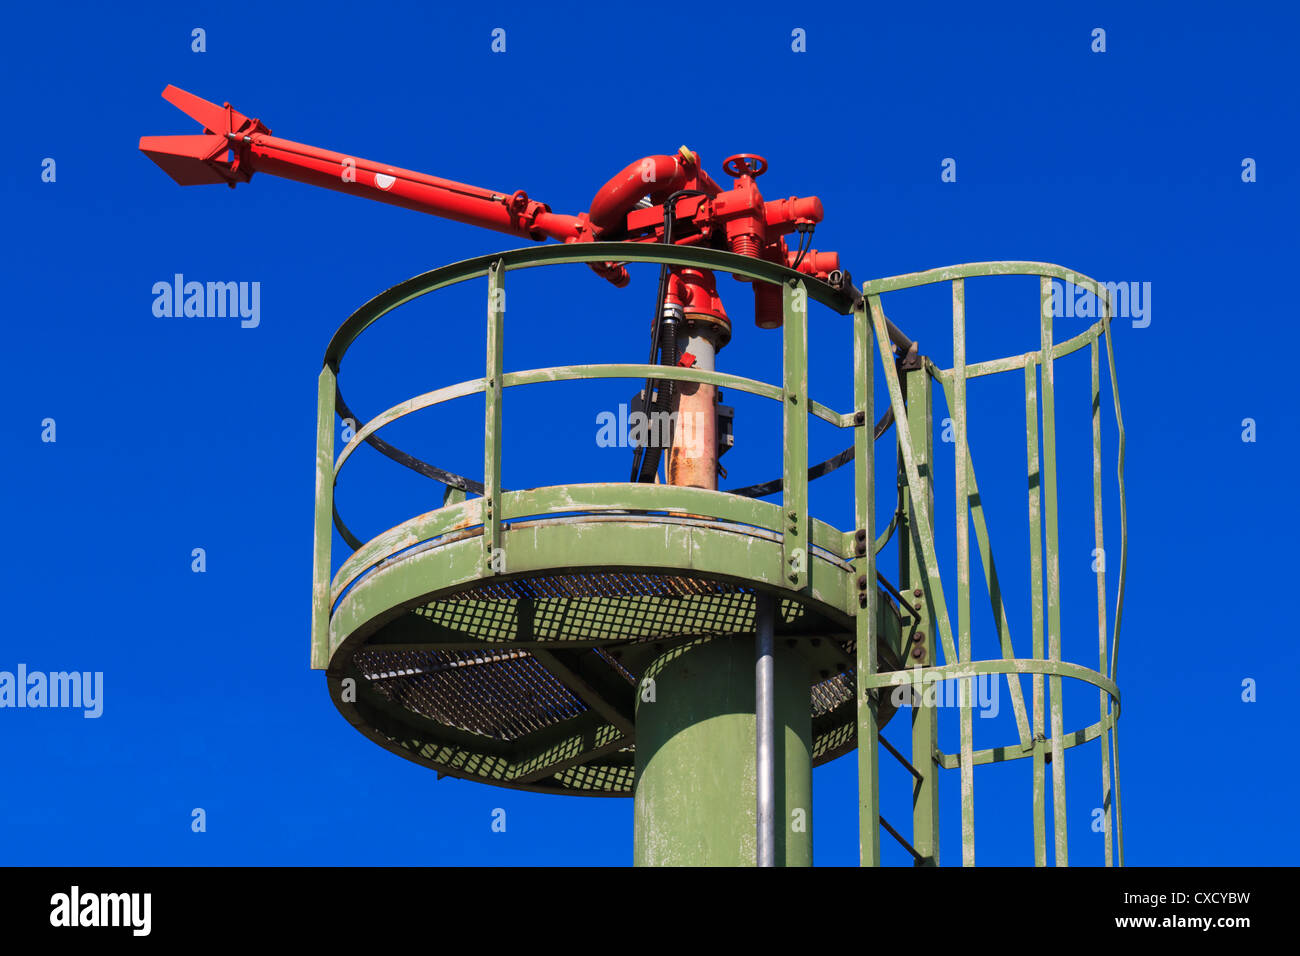 Fire Hose / Nozzle at an oil / gas heavy industry plant - Stock Image